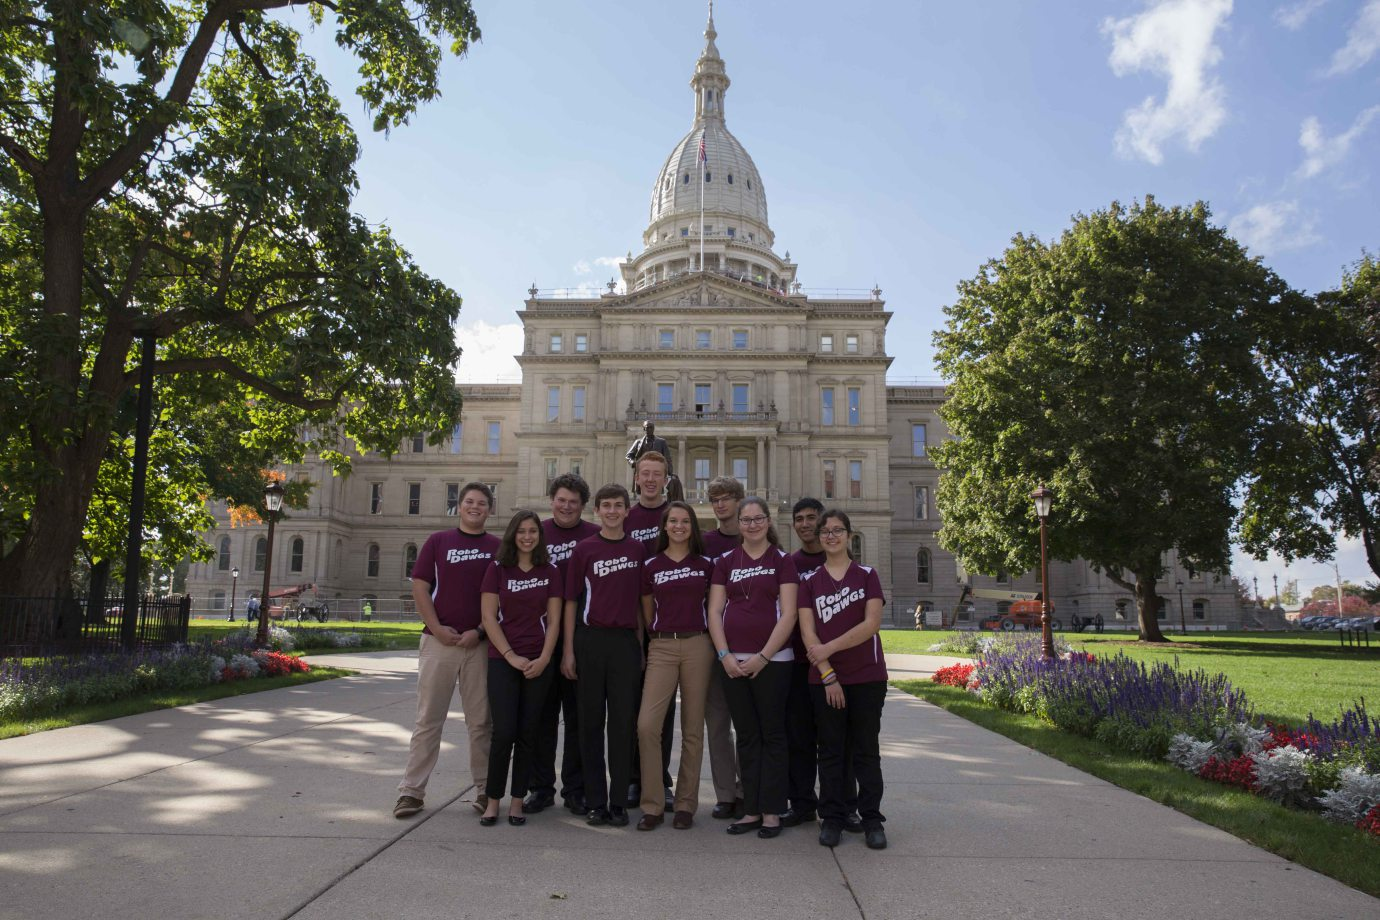 RoboDawgs at the Michigan state capital advocating for more STEM opportunities for students in Michigan.